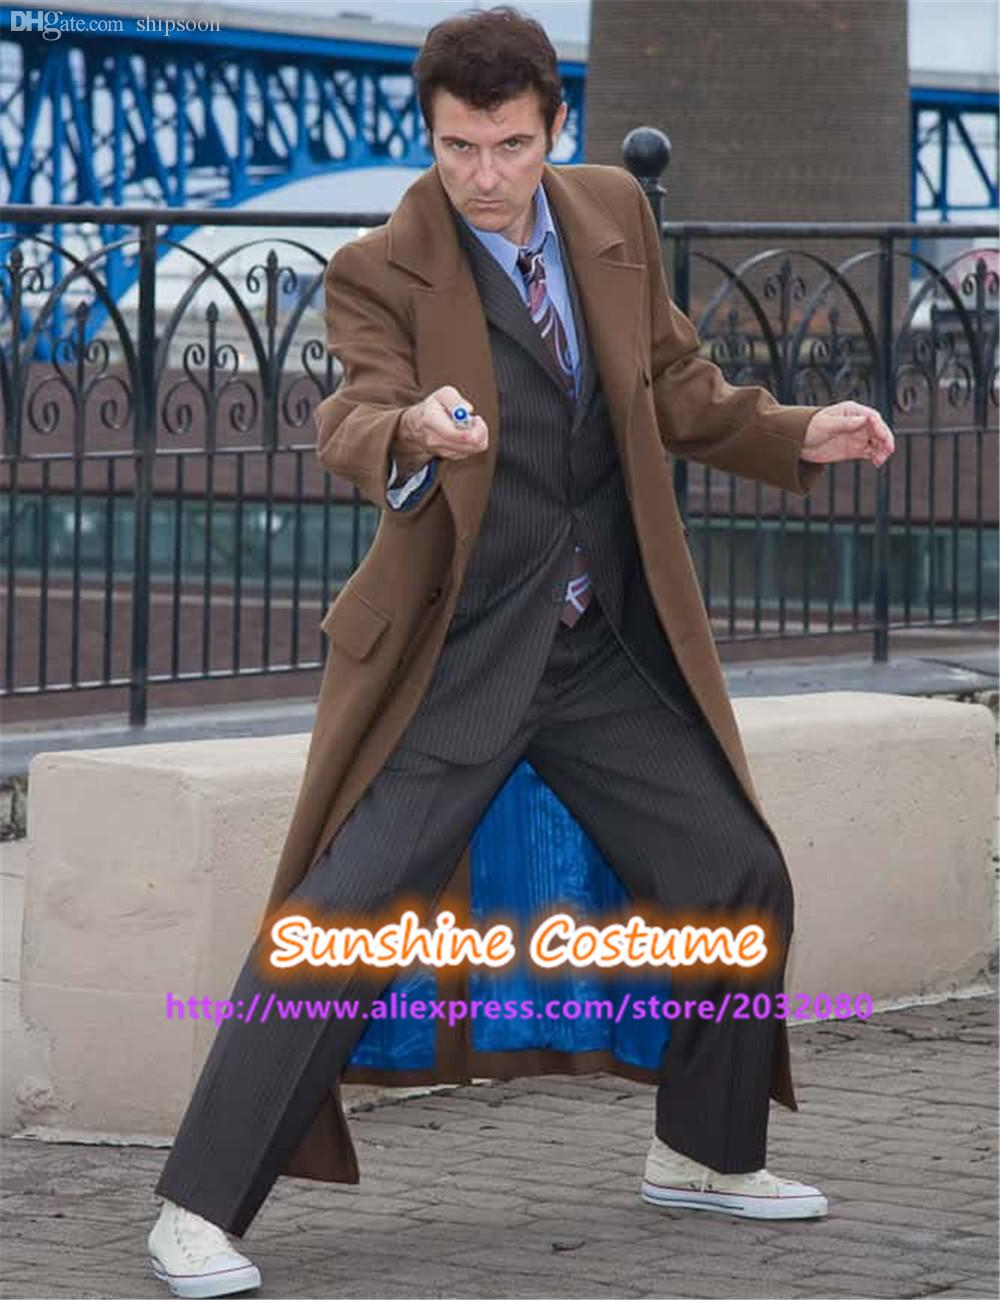 2018 Fall Tenth 10th Doctor Who Cosplay Costume 10th Doctor Brown Cosplay Costume Brown Long Trench Coat From Shipsoon $129.17 | Dhgate.Com  sc 1 st  DHgate.com & 2018 Fall Tenth 10th Doctor Who Cosplay Costume 10th Doctor Brown ...